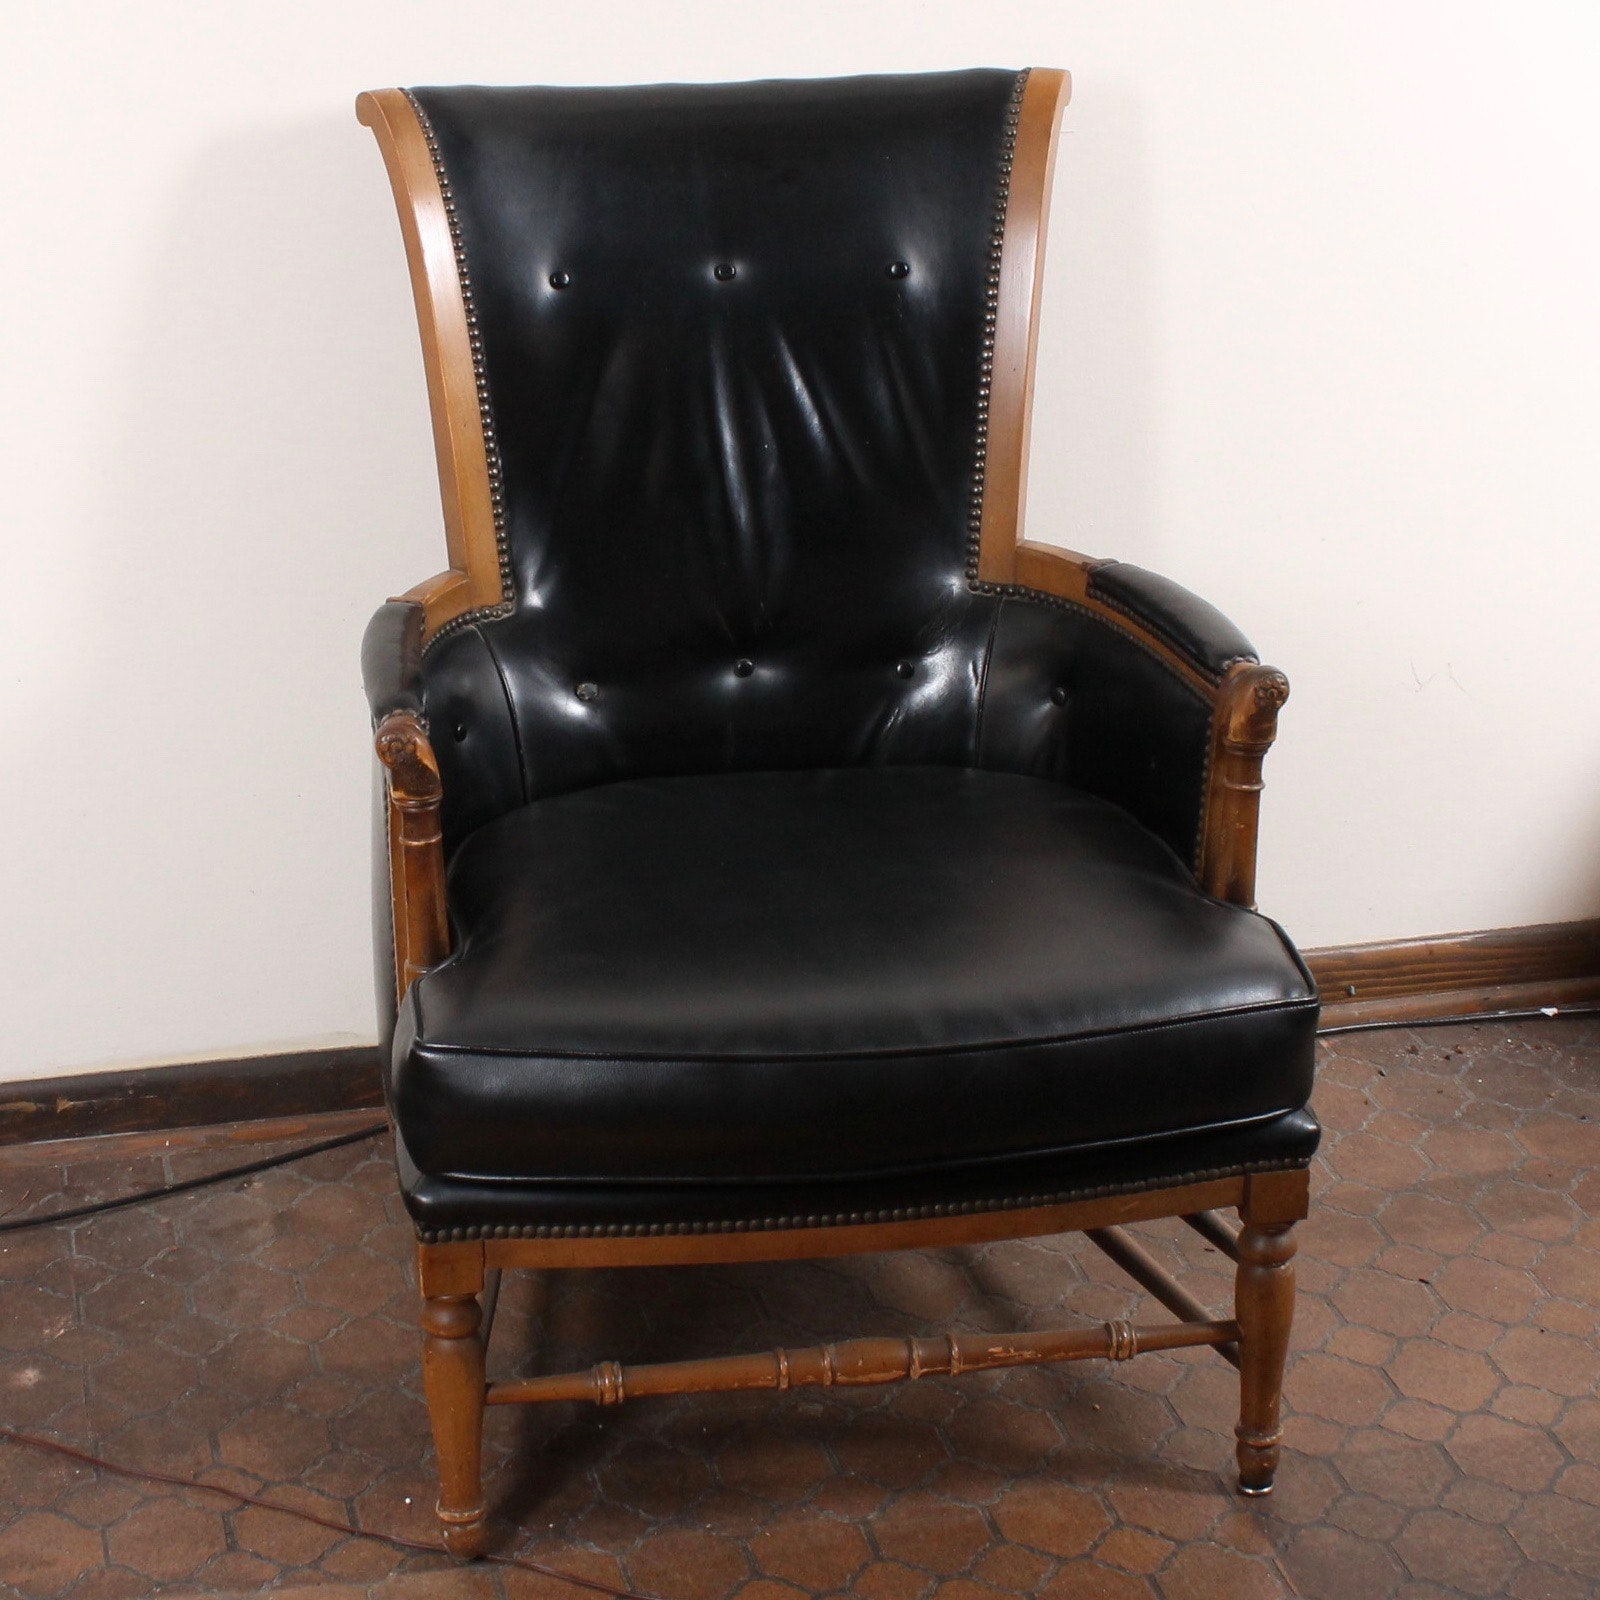 Vintage Leather Upholstered Bergère Chair